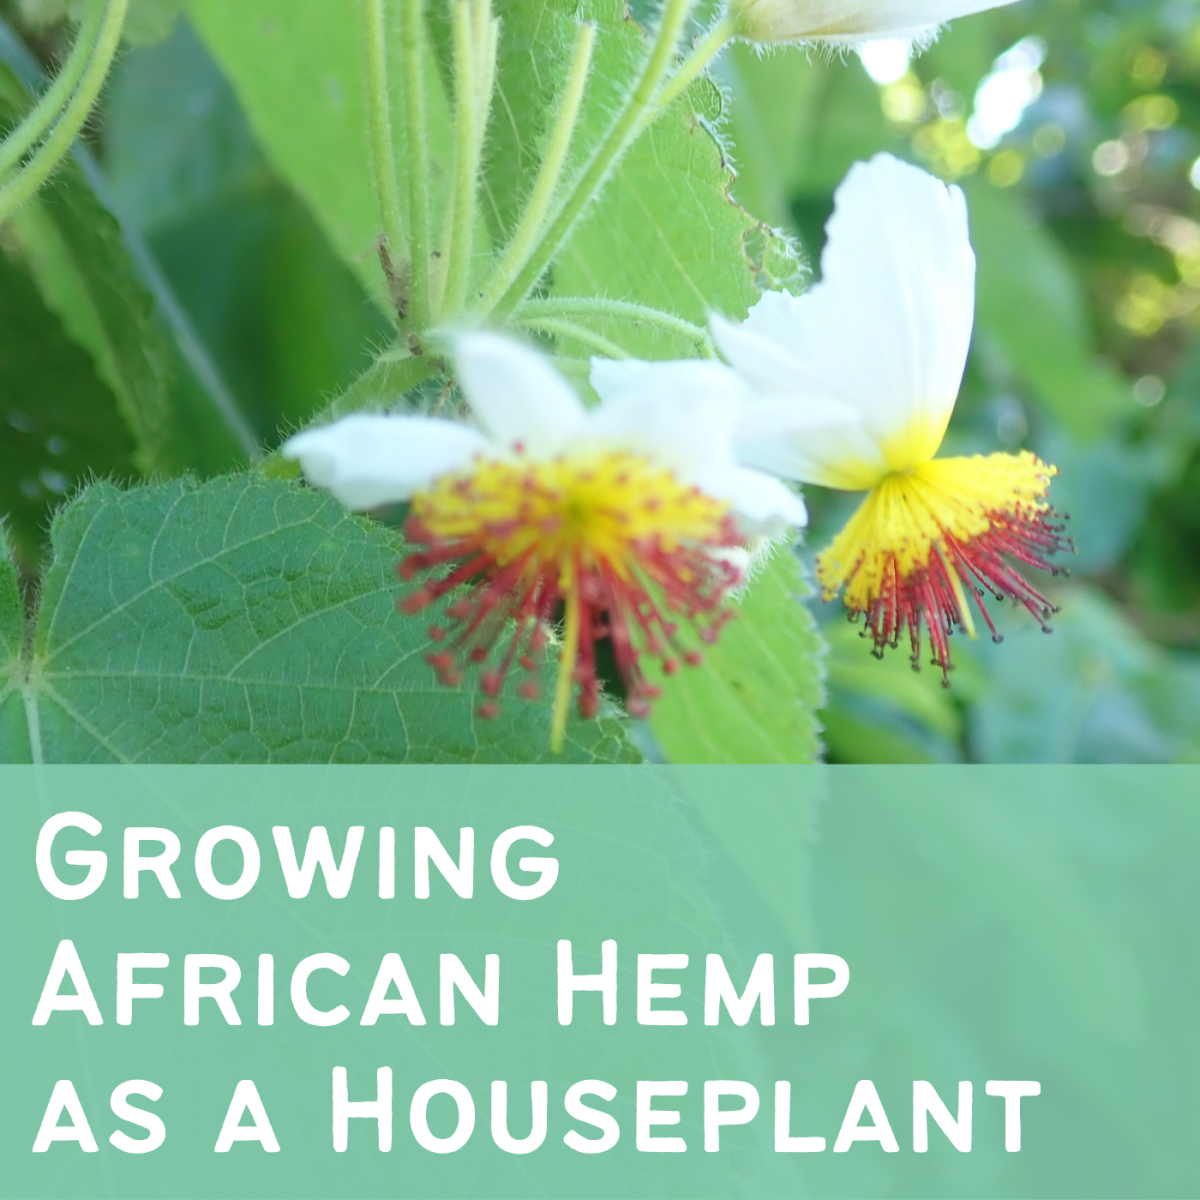 African hemp is a fast-growing houseplant with interesting, colorful blooms. Learn more about growing it in a pot.